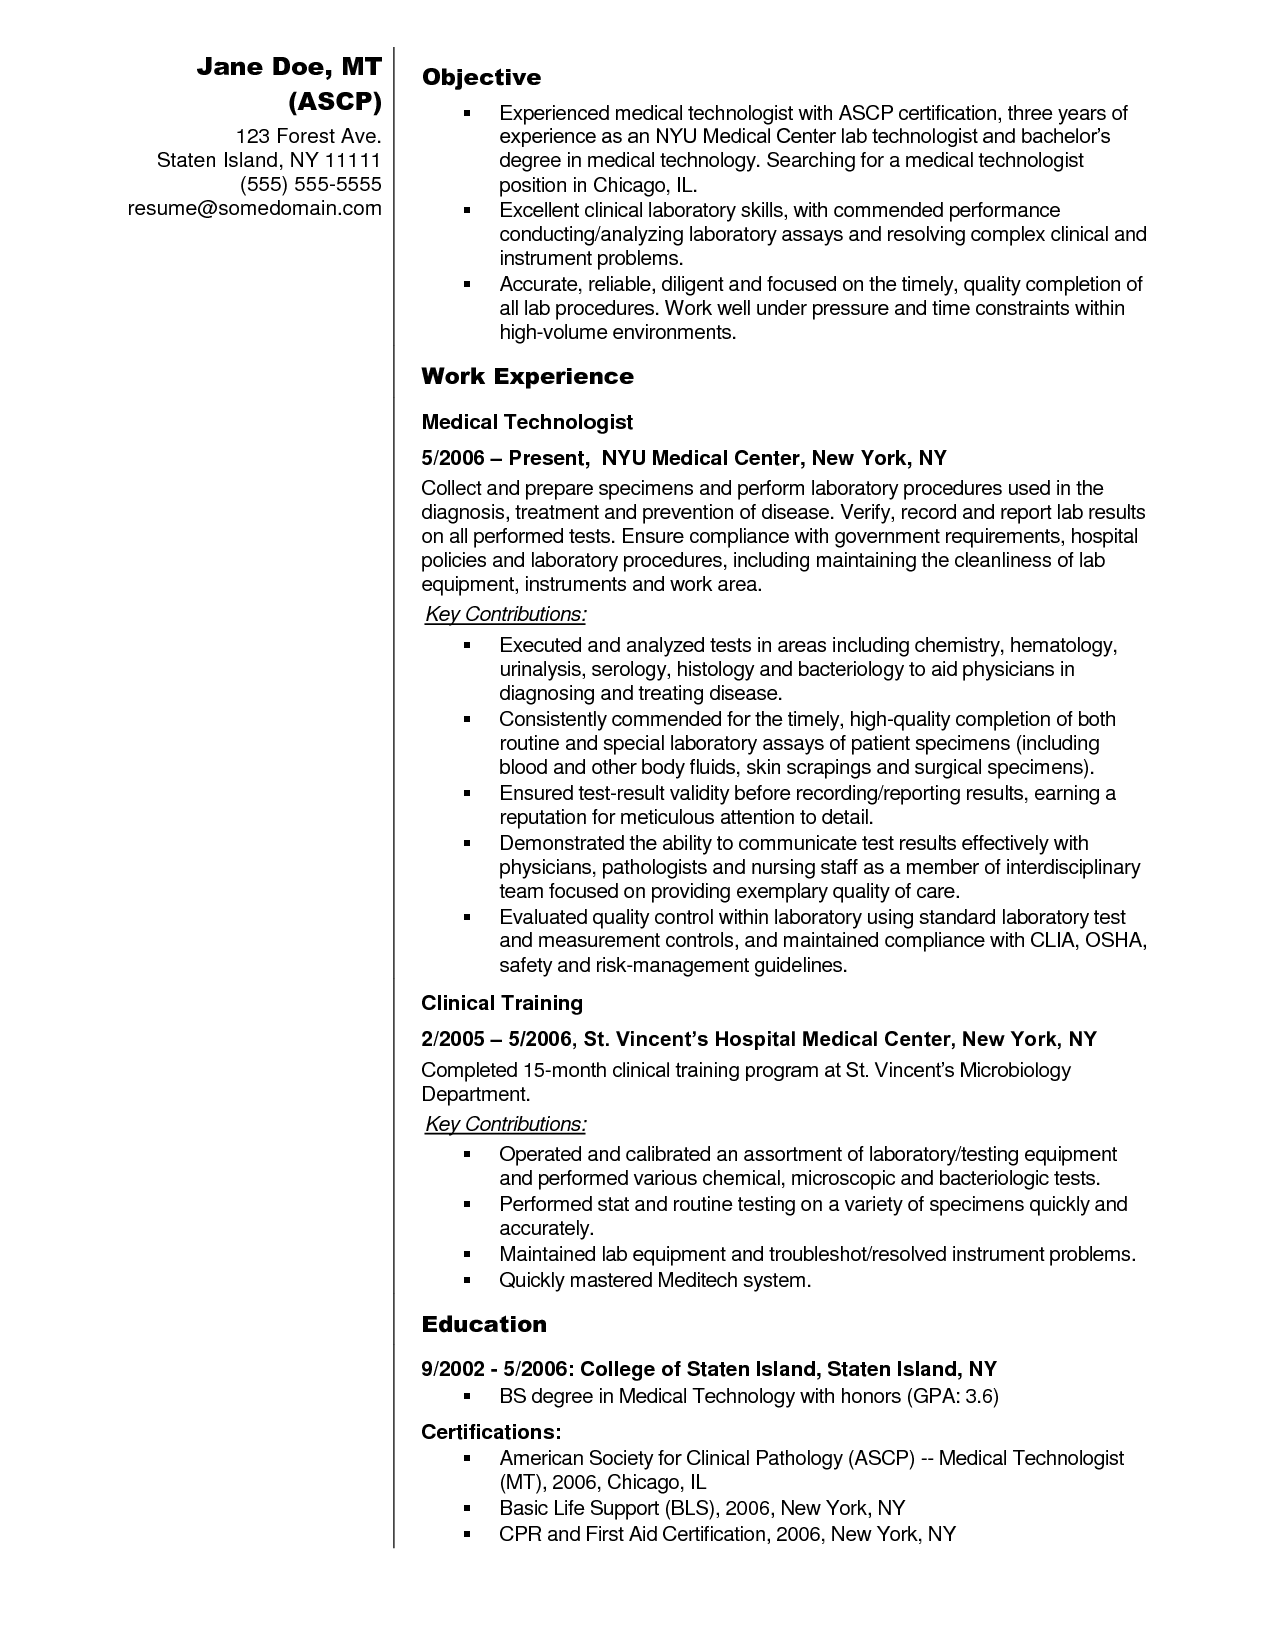 Sample Resume Medical Technologist Philippines (2